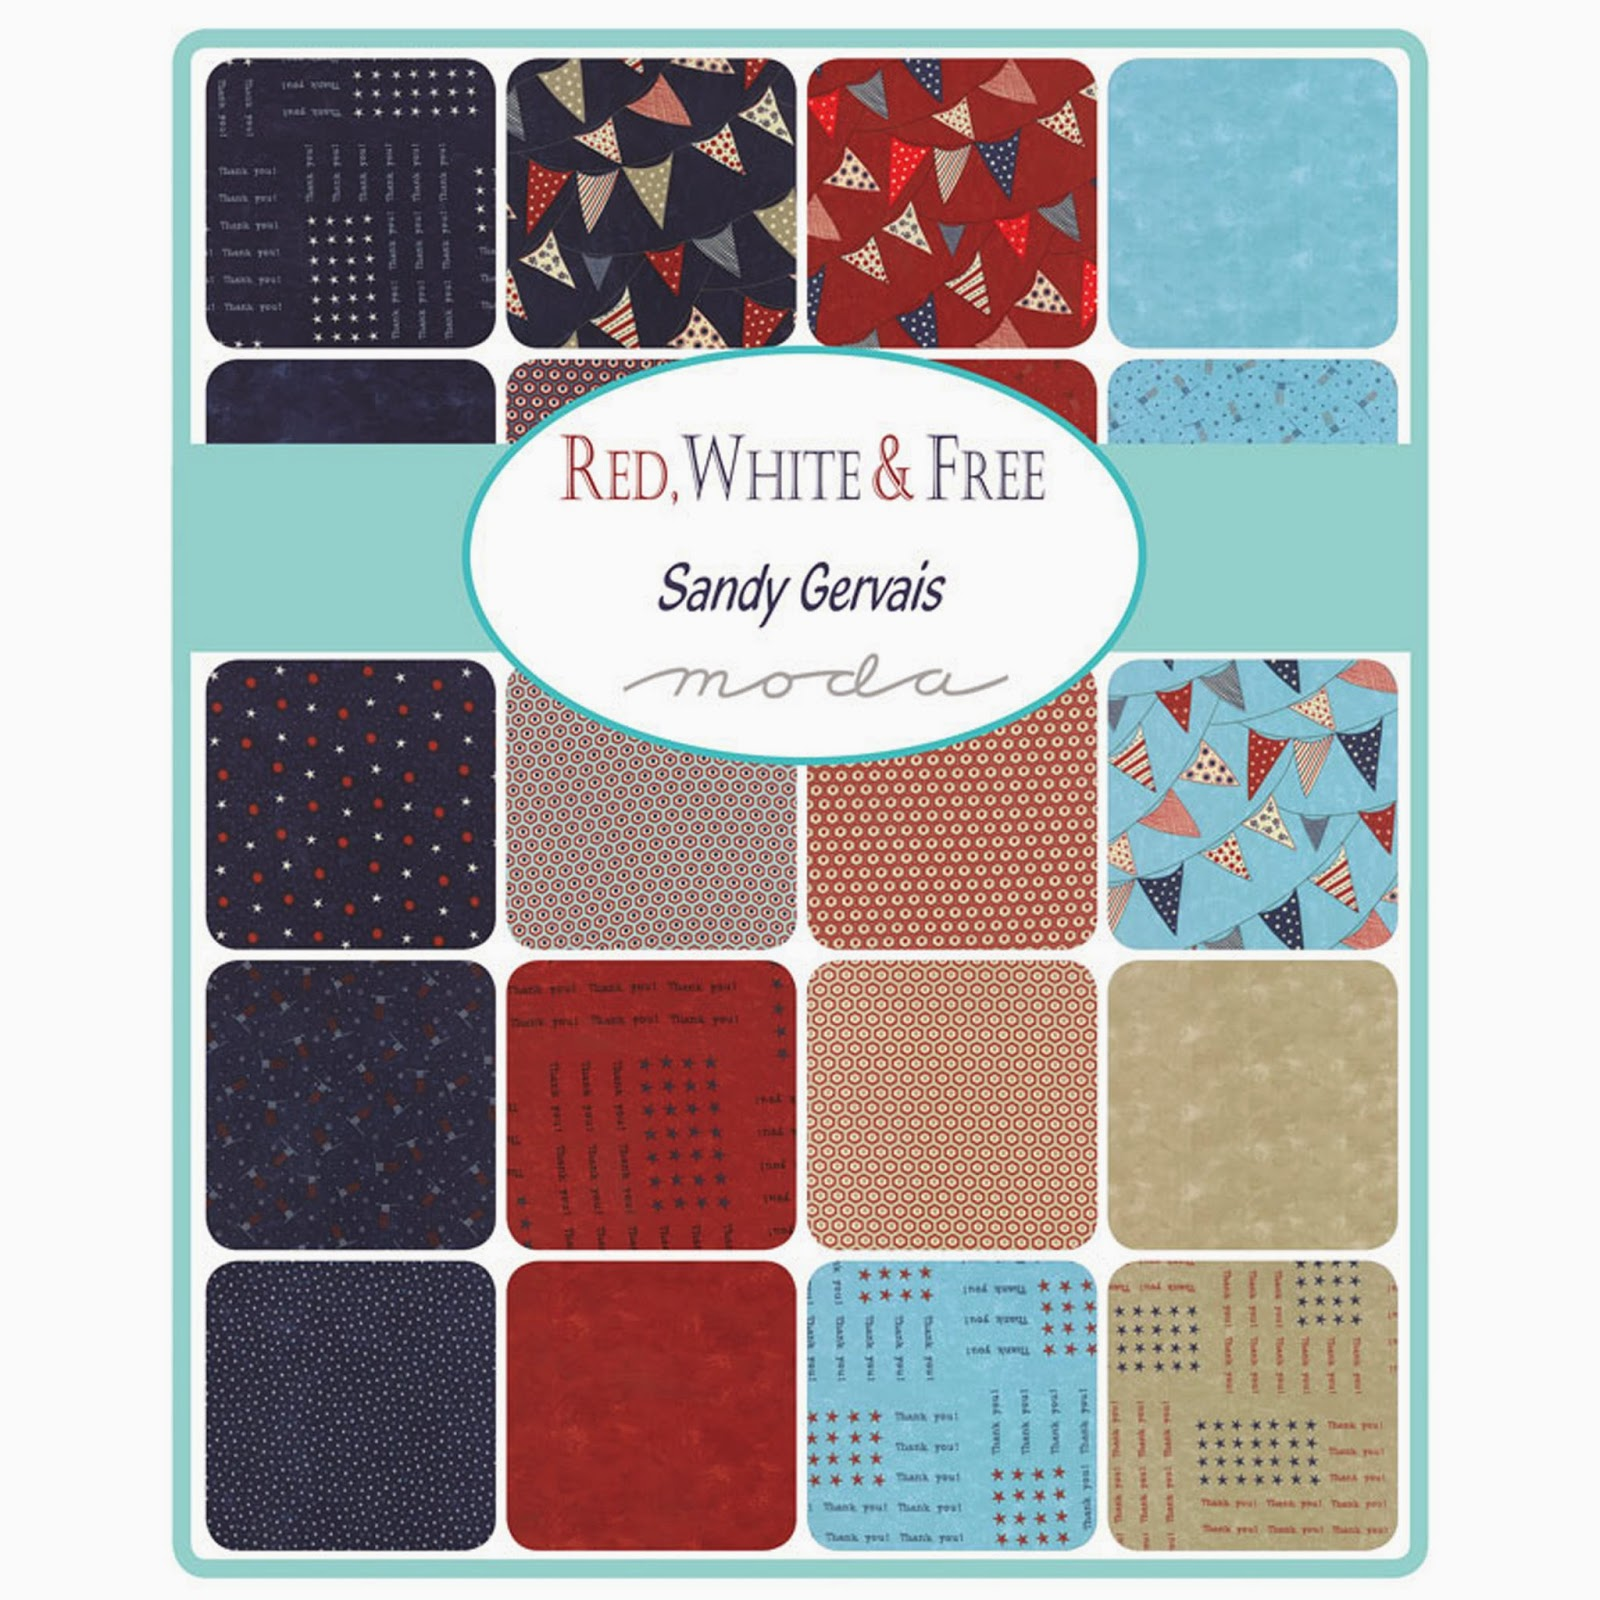 Moda RED, WHITE & FREE Fabric by Sandy Gervais for Moda Fabrics